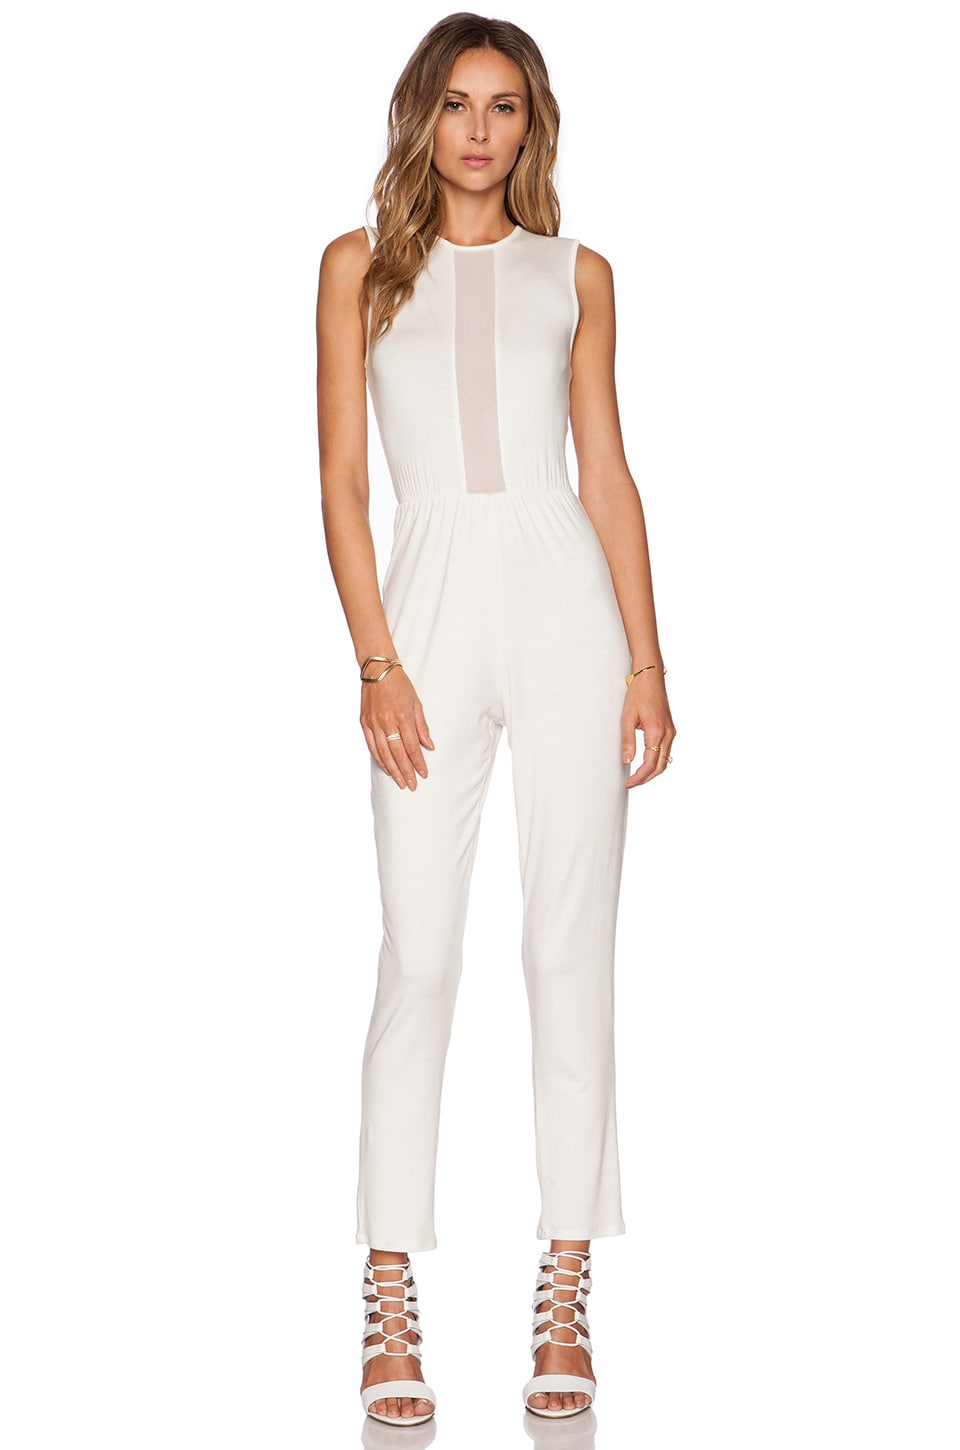 Rachel Pally Mesh Darralynn Jumpsuit in White